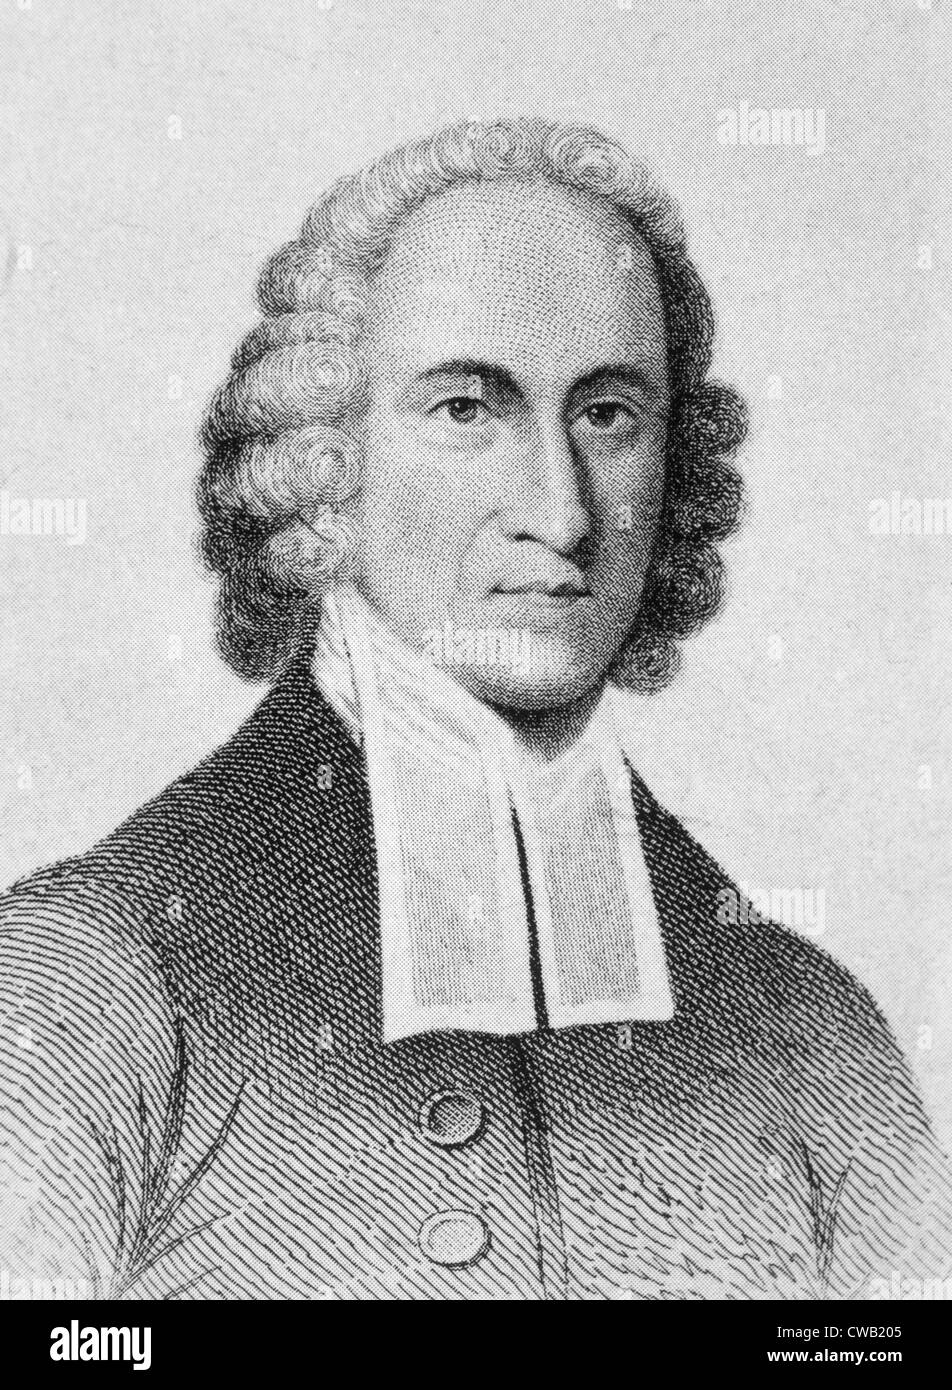 Jonathan Edwards (1703-1758) - Stock Image